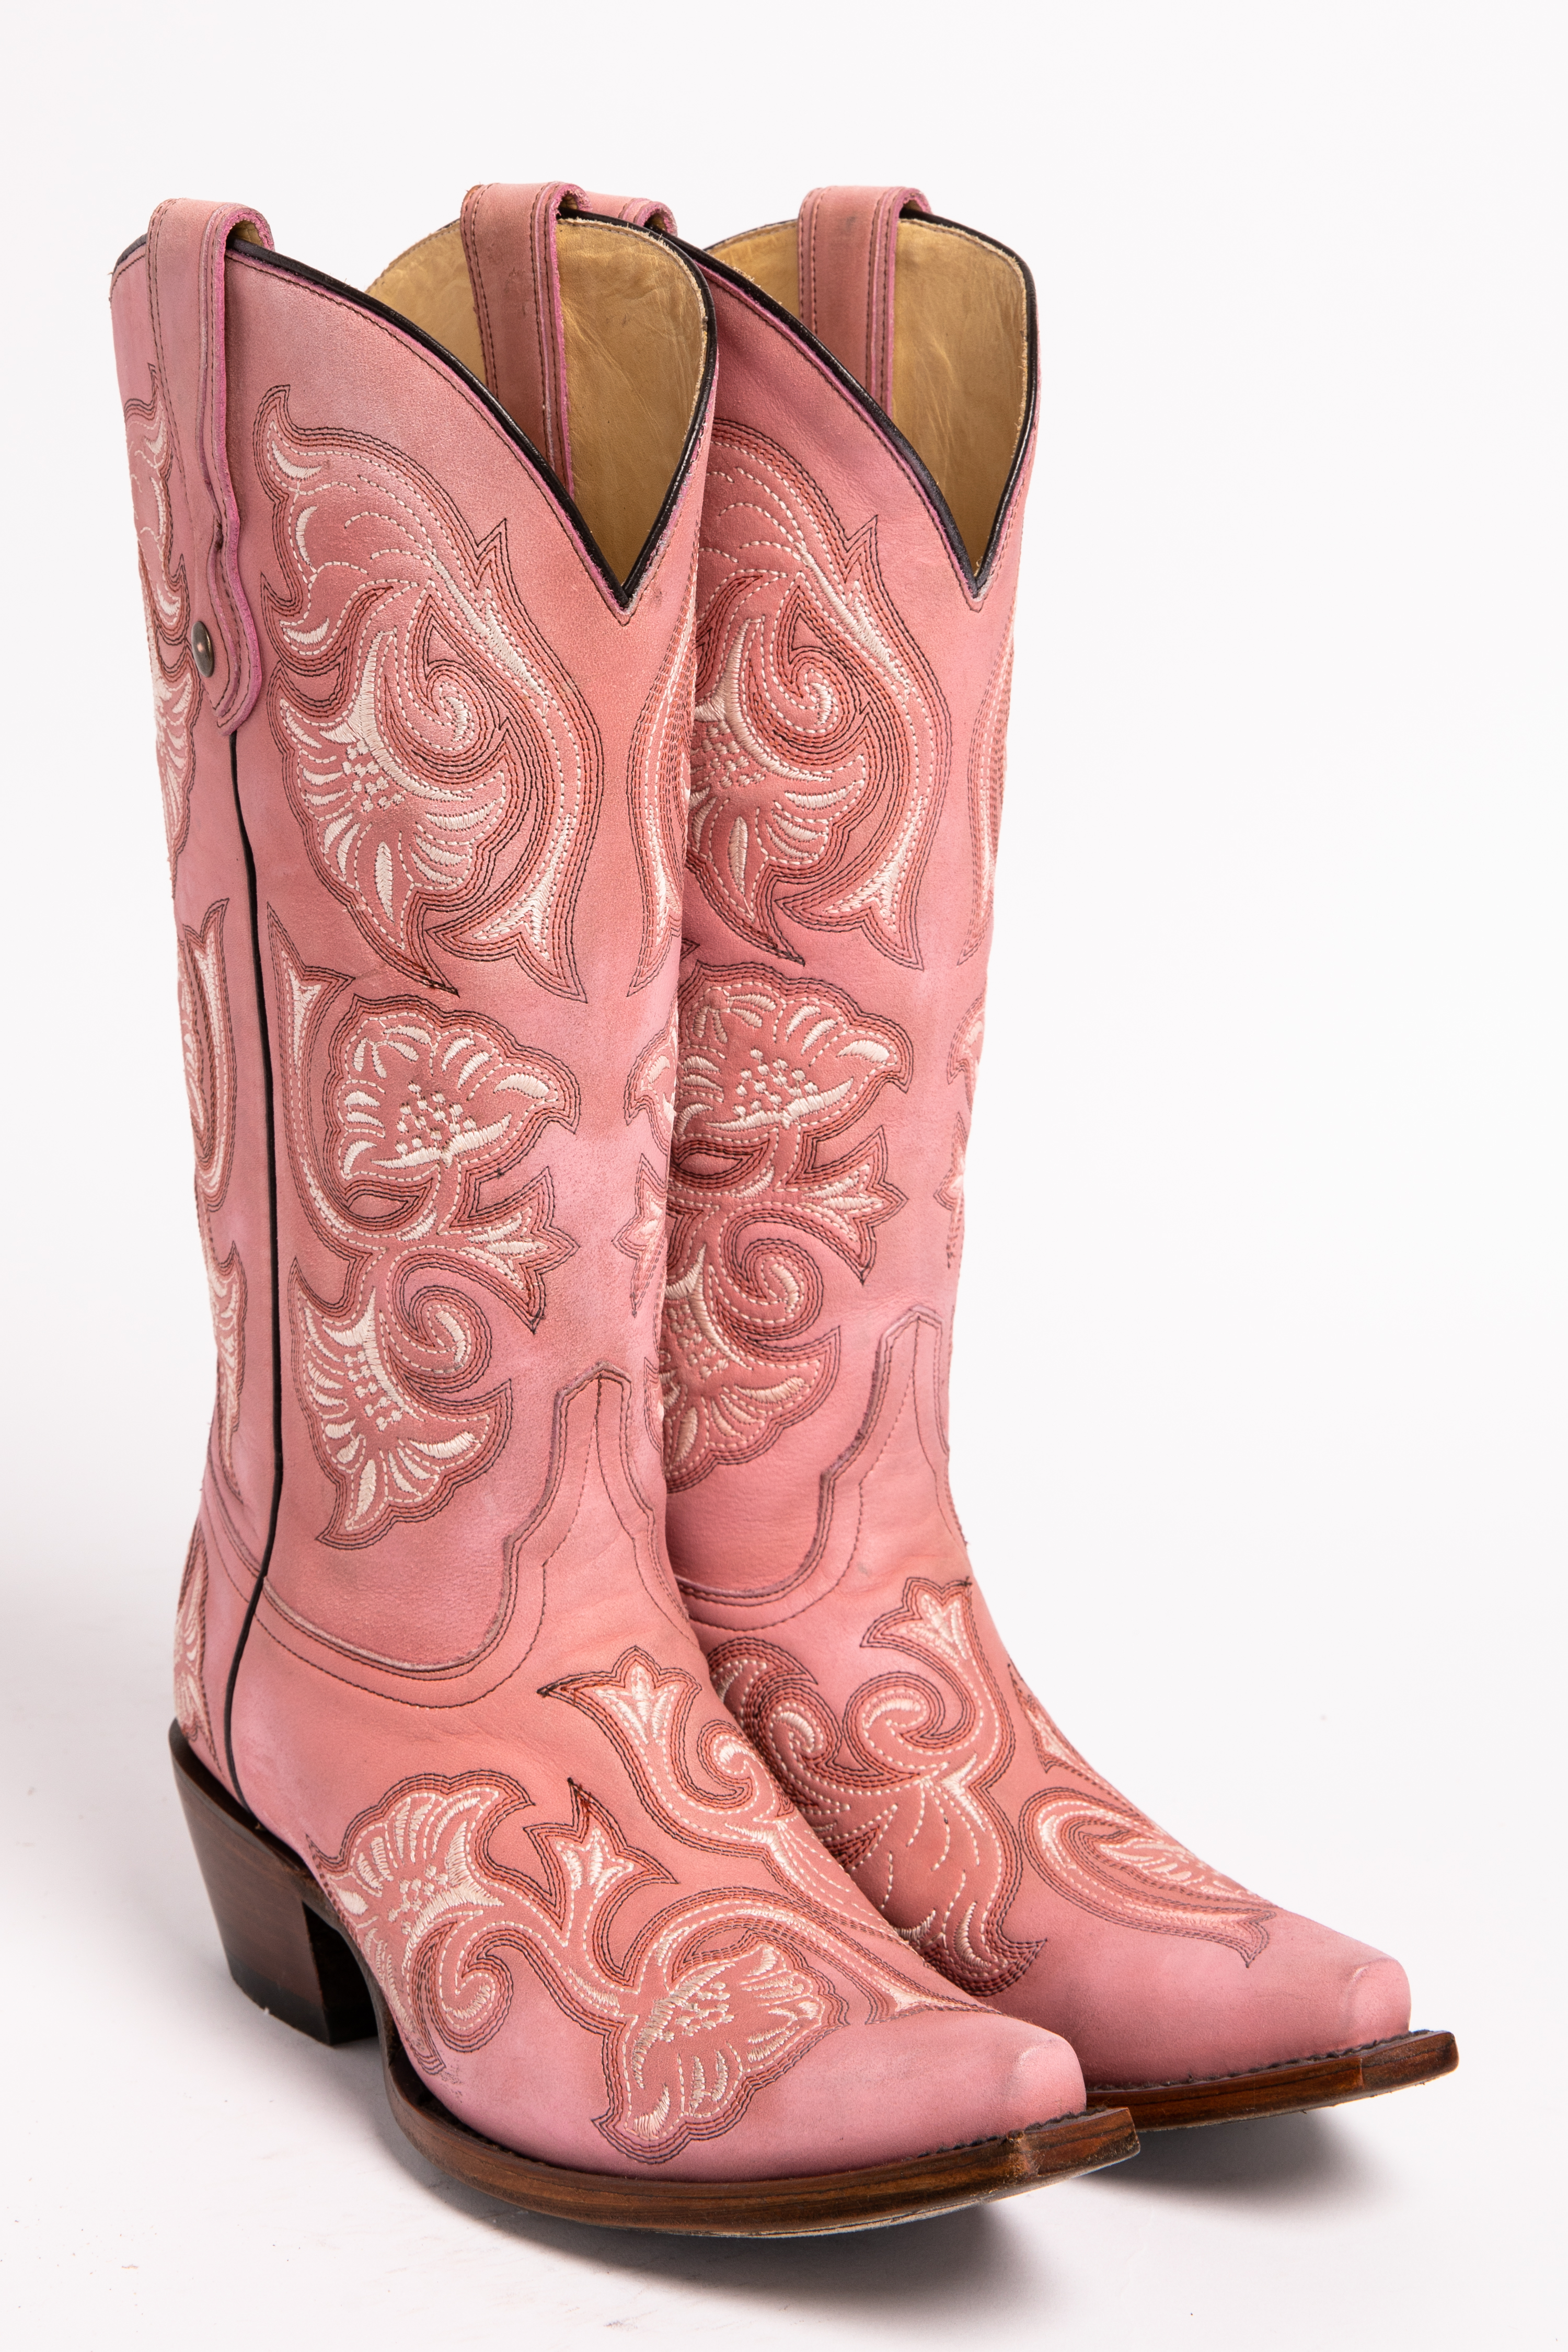 96b98cc57d00b5 Corral floral embroidered pink cowgirl boots snip toe pink hi res JPG  3000x4500 Boots pink